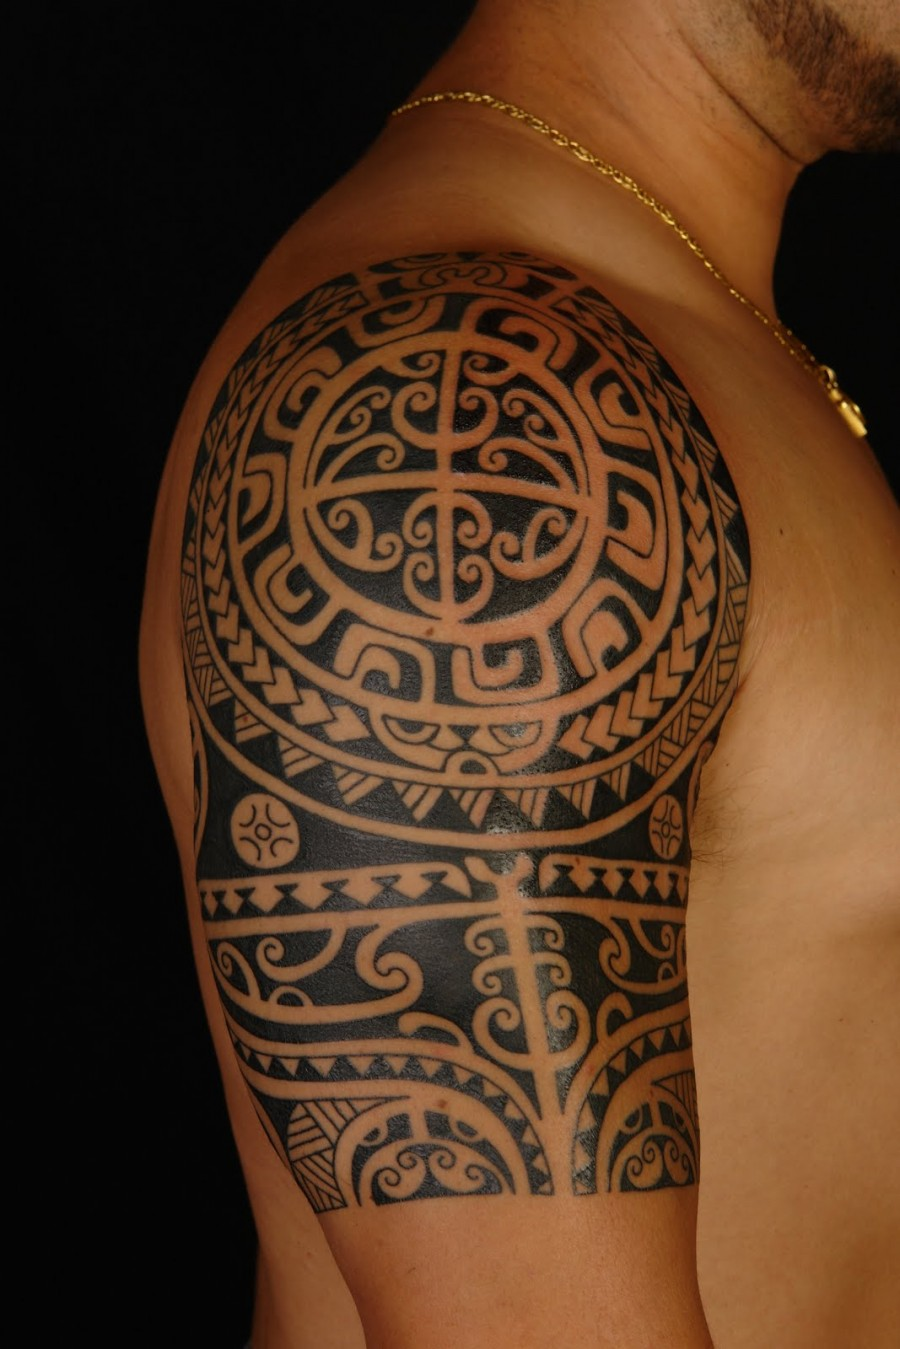 Awesome Polynesian Shoulder / Sleeve Tattoo Design for Men and Women